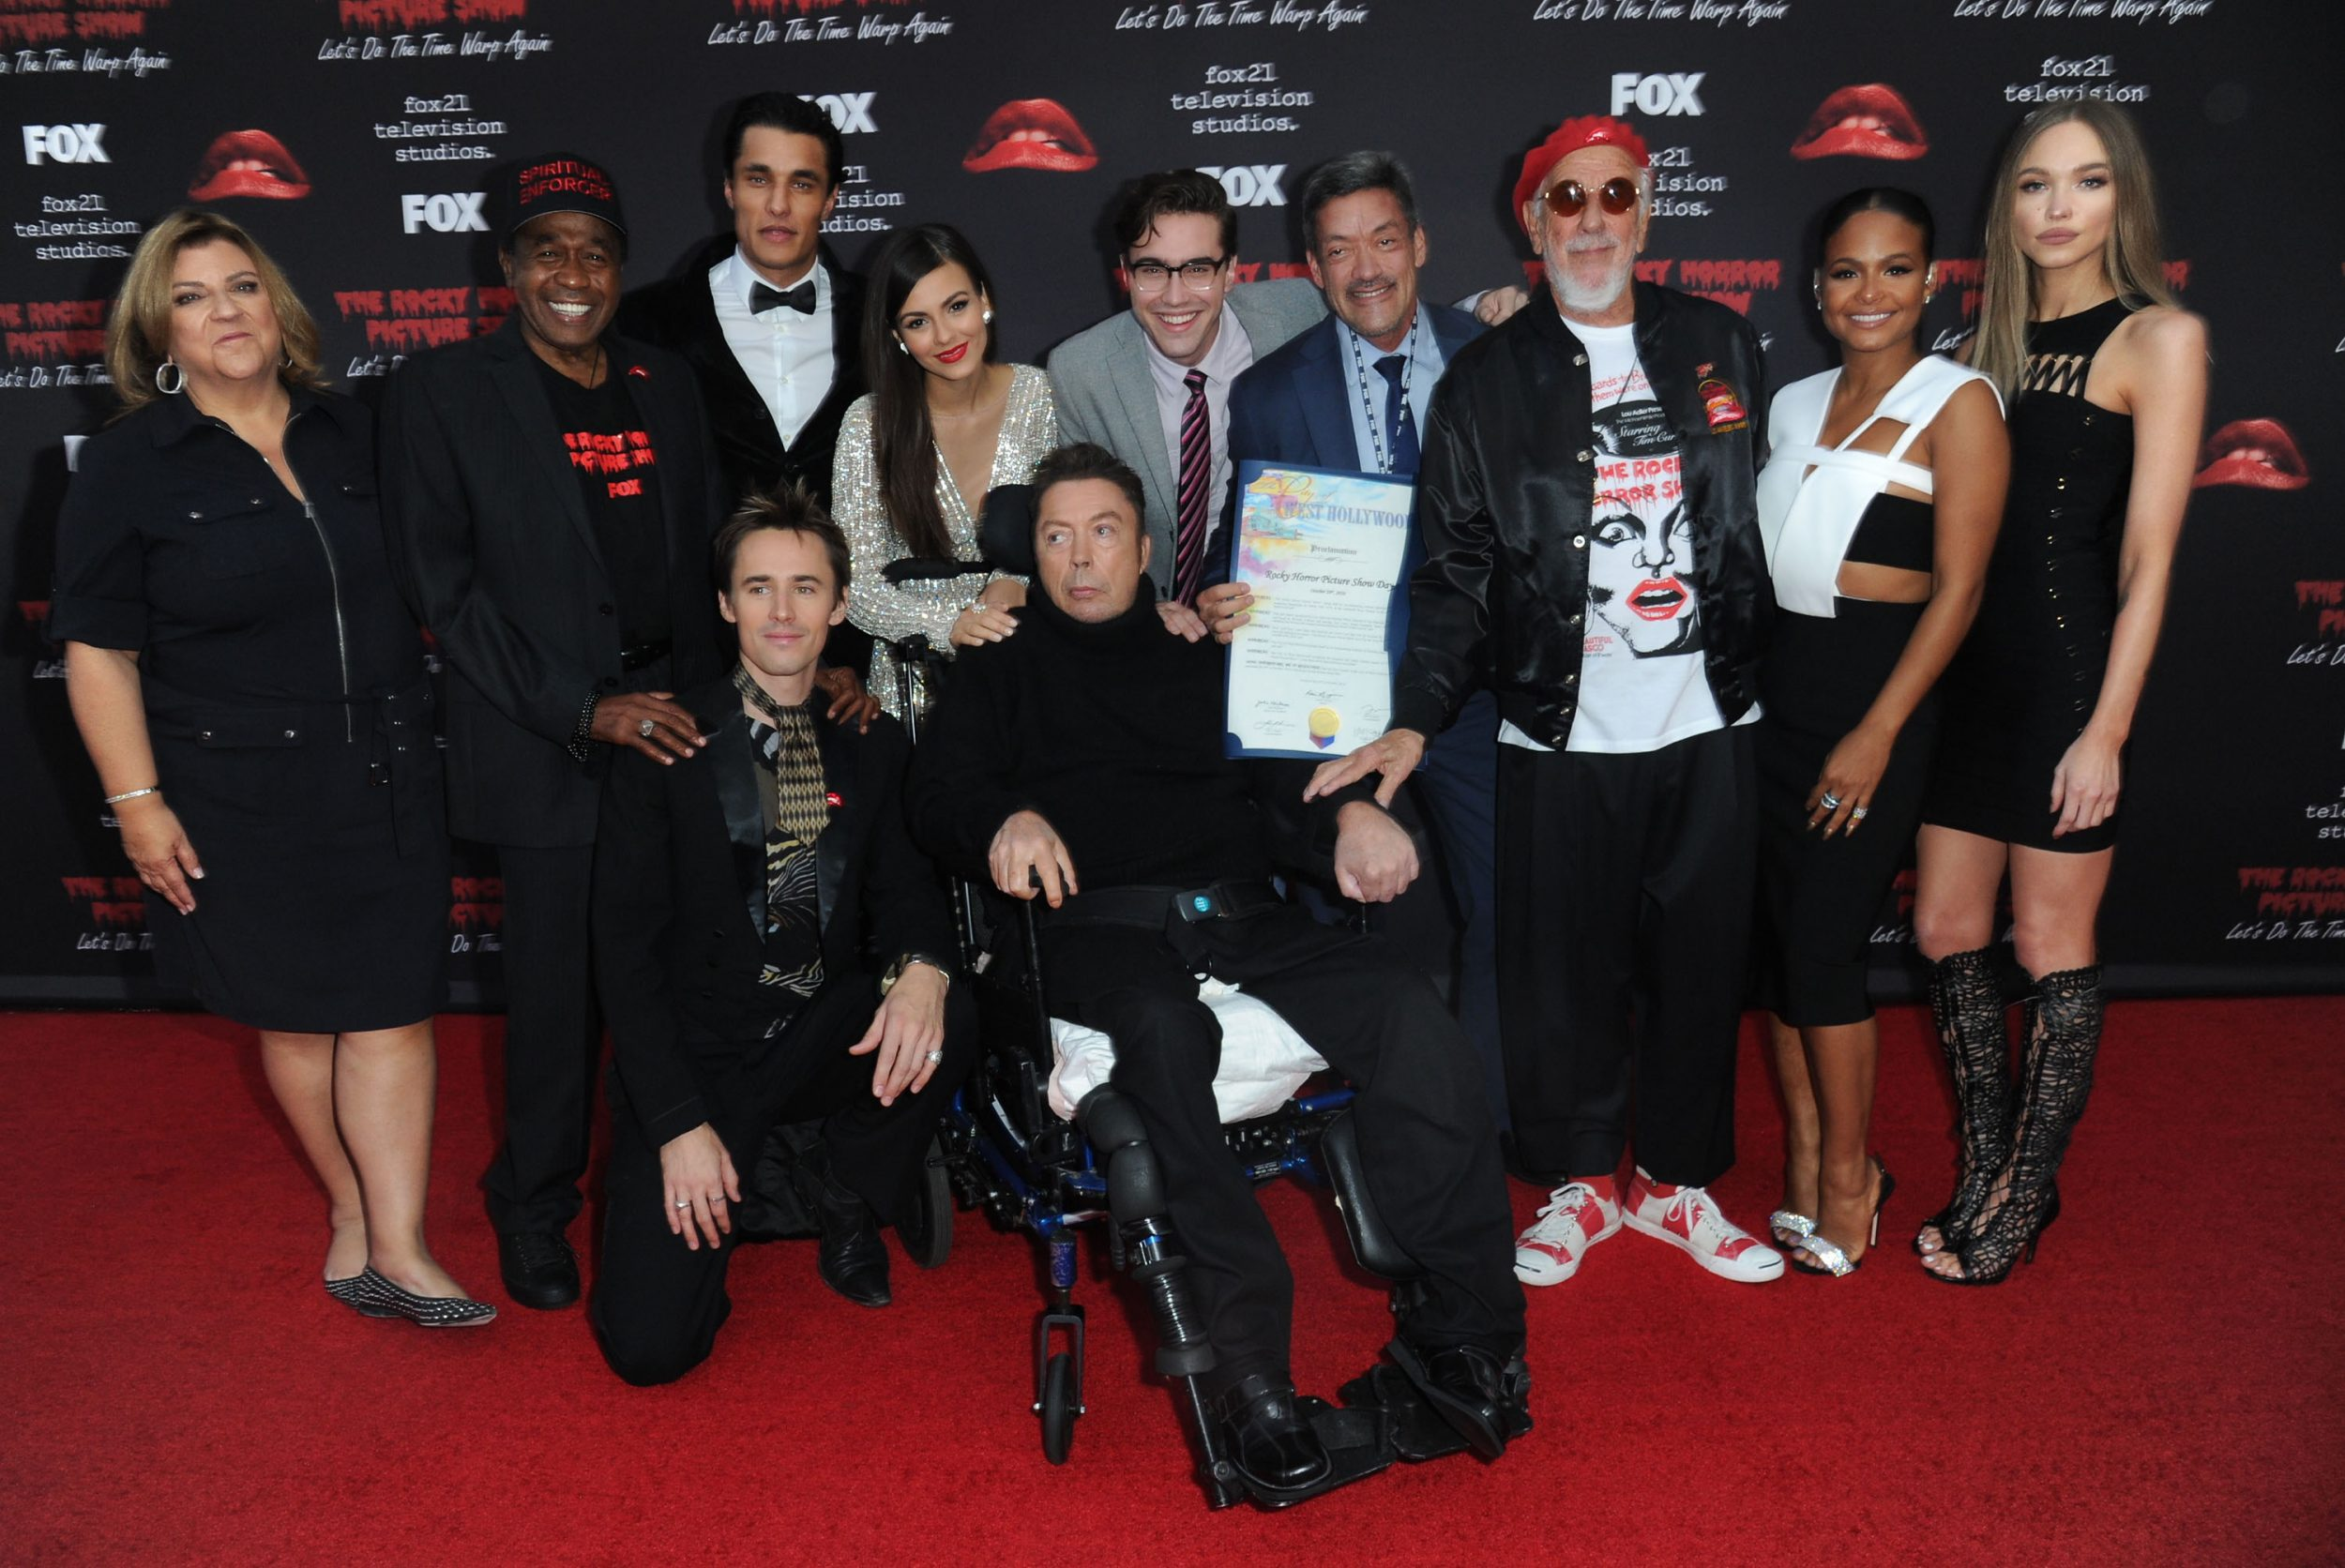 THE ROCKY HORROR PICTURE SHOW: Let's Do The Time Warp Again (and Transylvanians!): L-R: Executive Producer Gail Berman, cast members Ben Vereen, Reeve Carney, Staz Nair, Victoria Justice, Tim Curry, Ryan McCartan, West Hollywood City Councilmember John Duran, Executive Producer Lou Adler, and cast members Christina Milian and Ivy Levan arrive at THE ROCKY HORROR PICTURE SHOW: Let's Do The Time Warp Again (and Transylvanians!) premiere party red carpet at The Roxy on Thursday, Oct. 13, in Los Angeles, CA. THE ROCKY HORROR PICTURE SHOW: Let's Do The Time Warp Again (And Transylvanians!) premieres Thursday, Oct. 20 (8:00-10:00 PM ET/PT) on FOX. © 2016 FOX BROADCASTING CR: Richard Shotwell/FOX